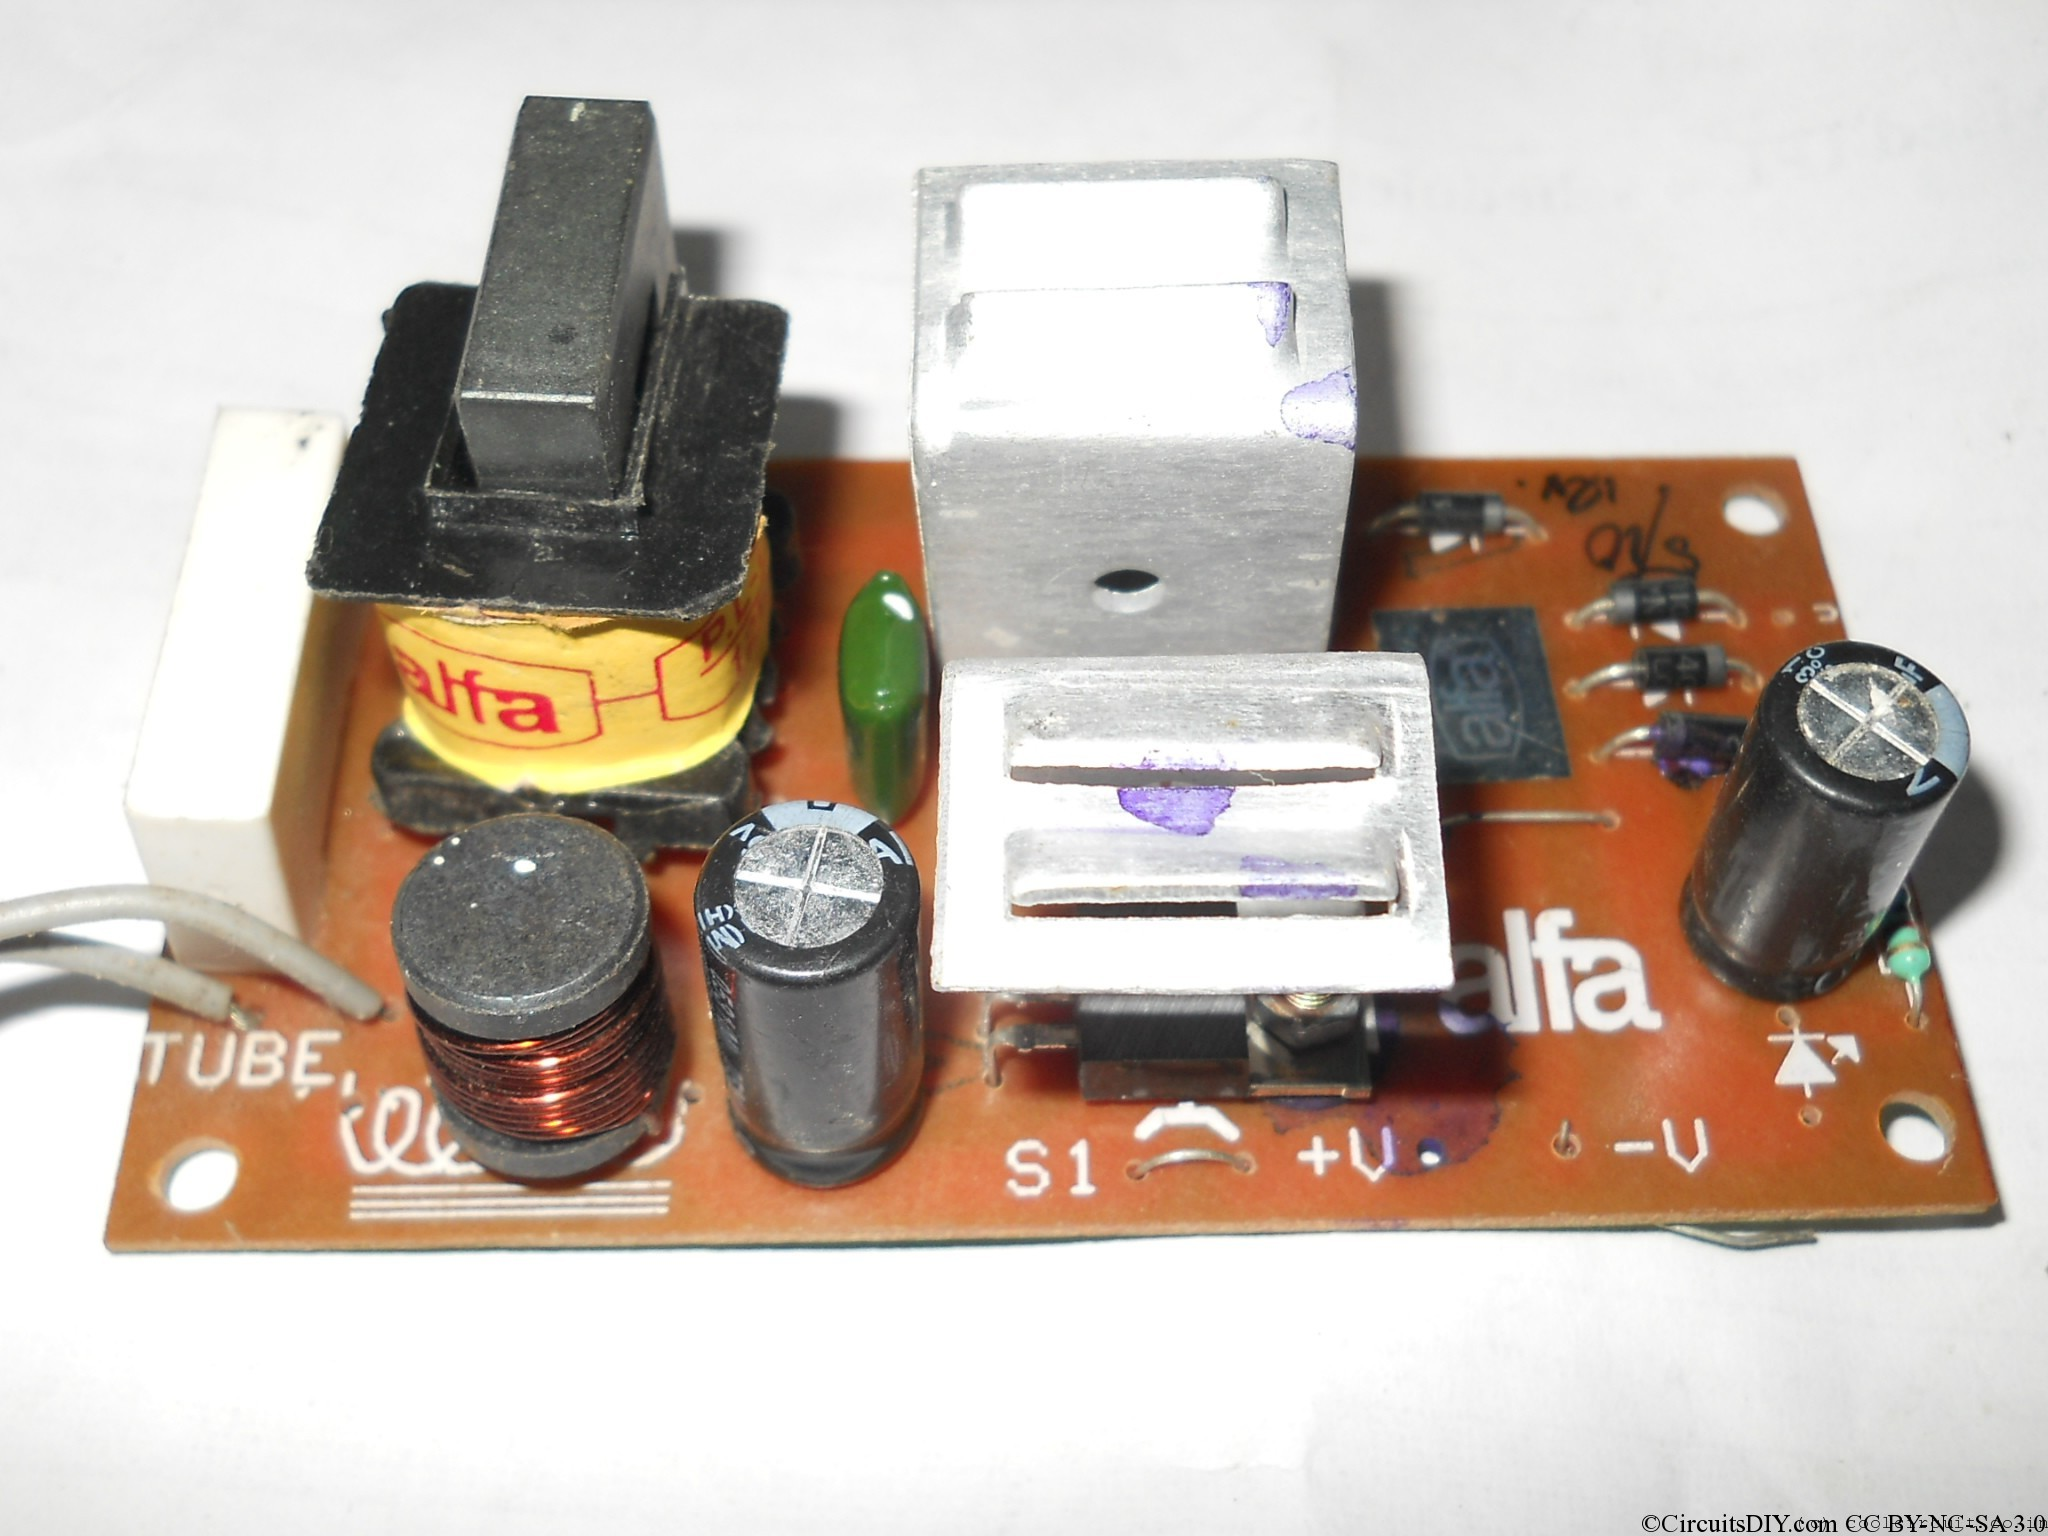 Circuits Diy Page 8 Of 12 Electronics Embedded System News How To Build A100 Watt Pure Sine Wave Inverter Circuit Electronic Setup Diagram An Alfa Branded Volt 20 Cfl Kit